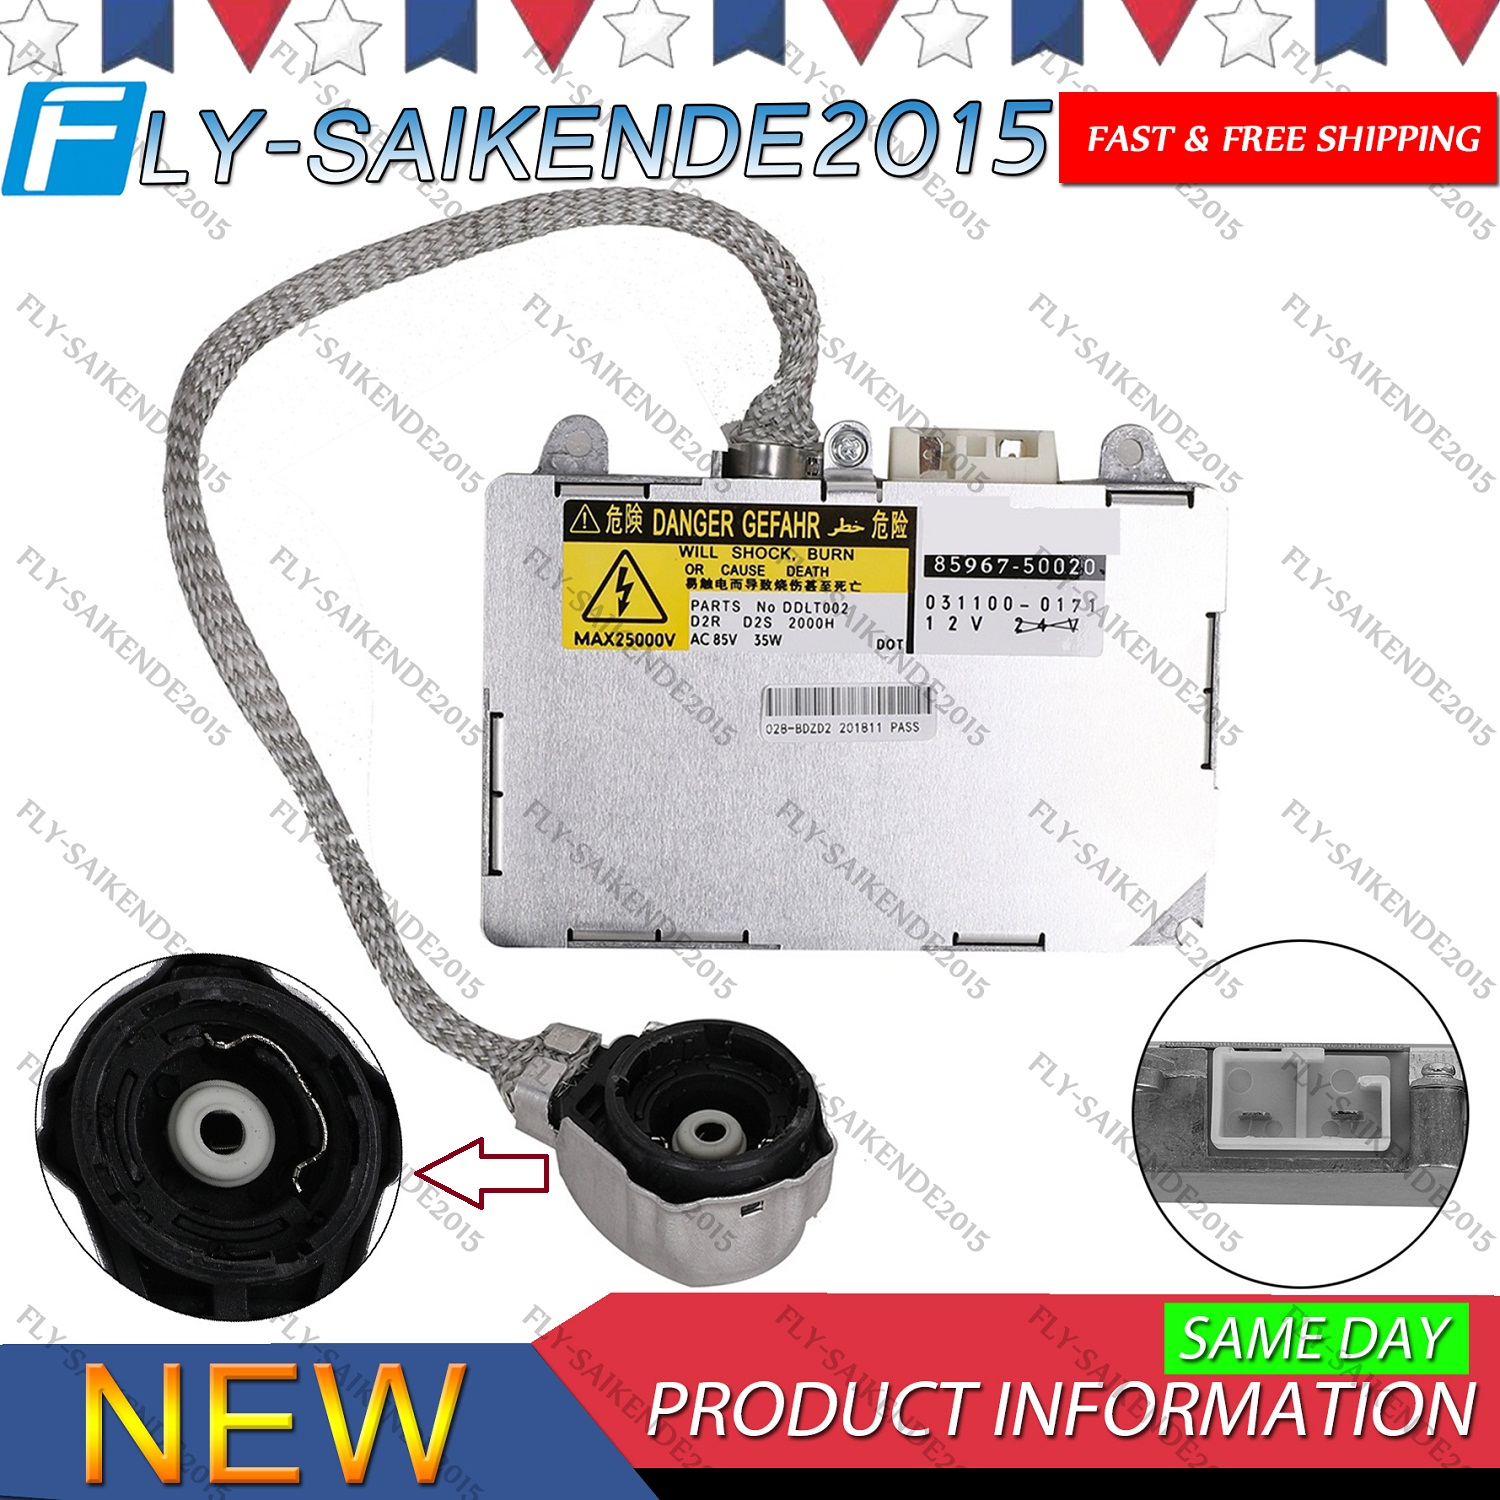 Details about Xenon HID Ballast For Mazda 6 Toyota Lincoln LS Porsche on